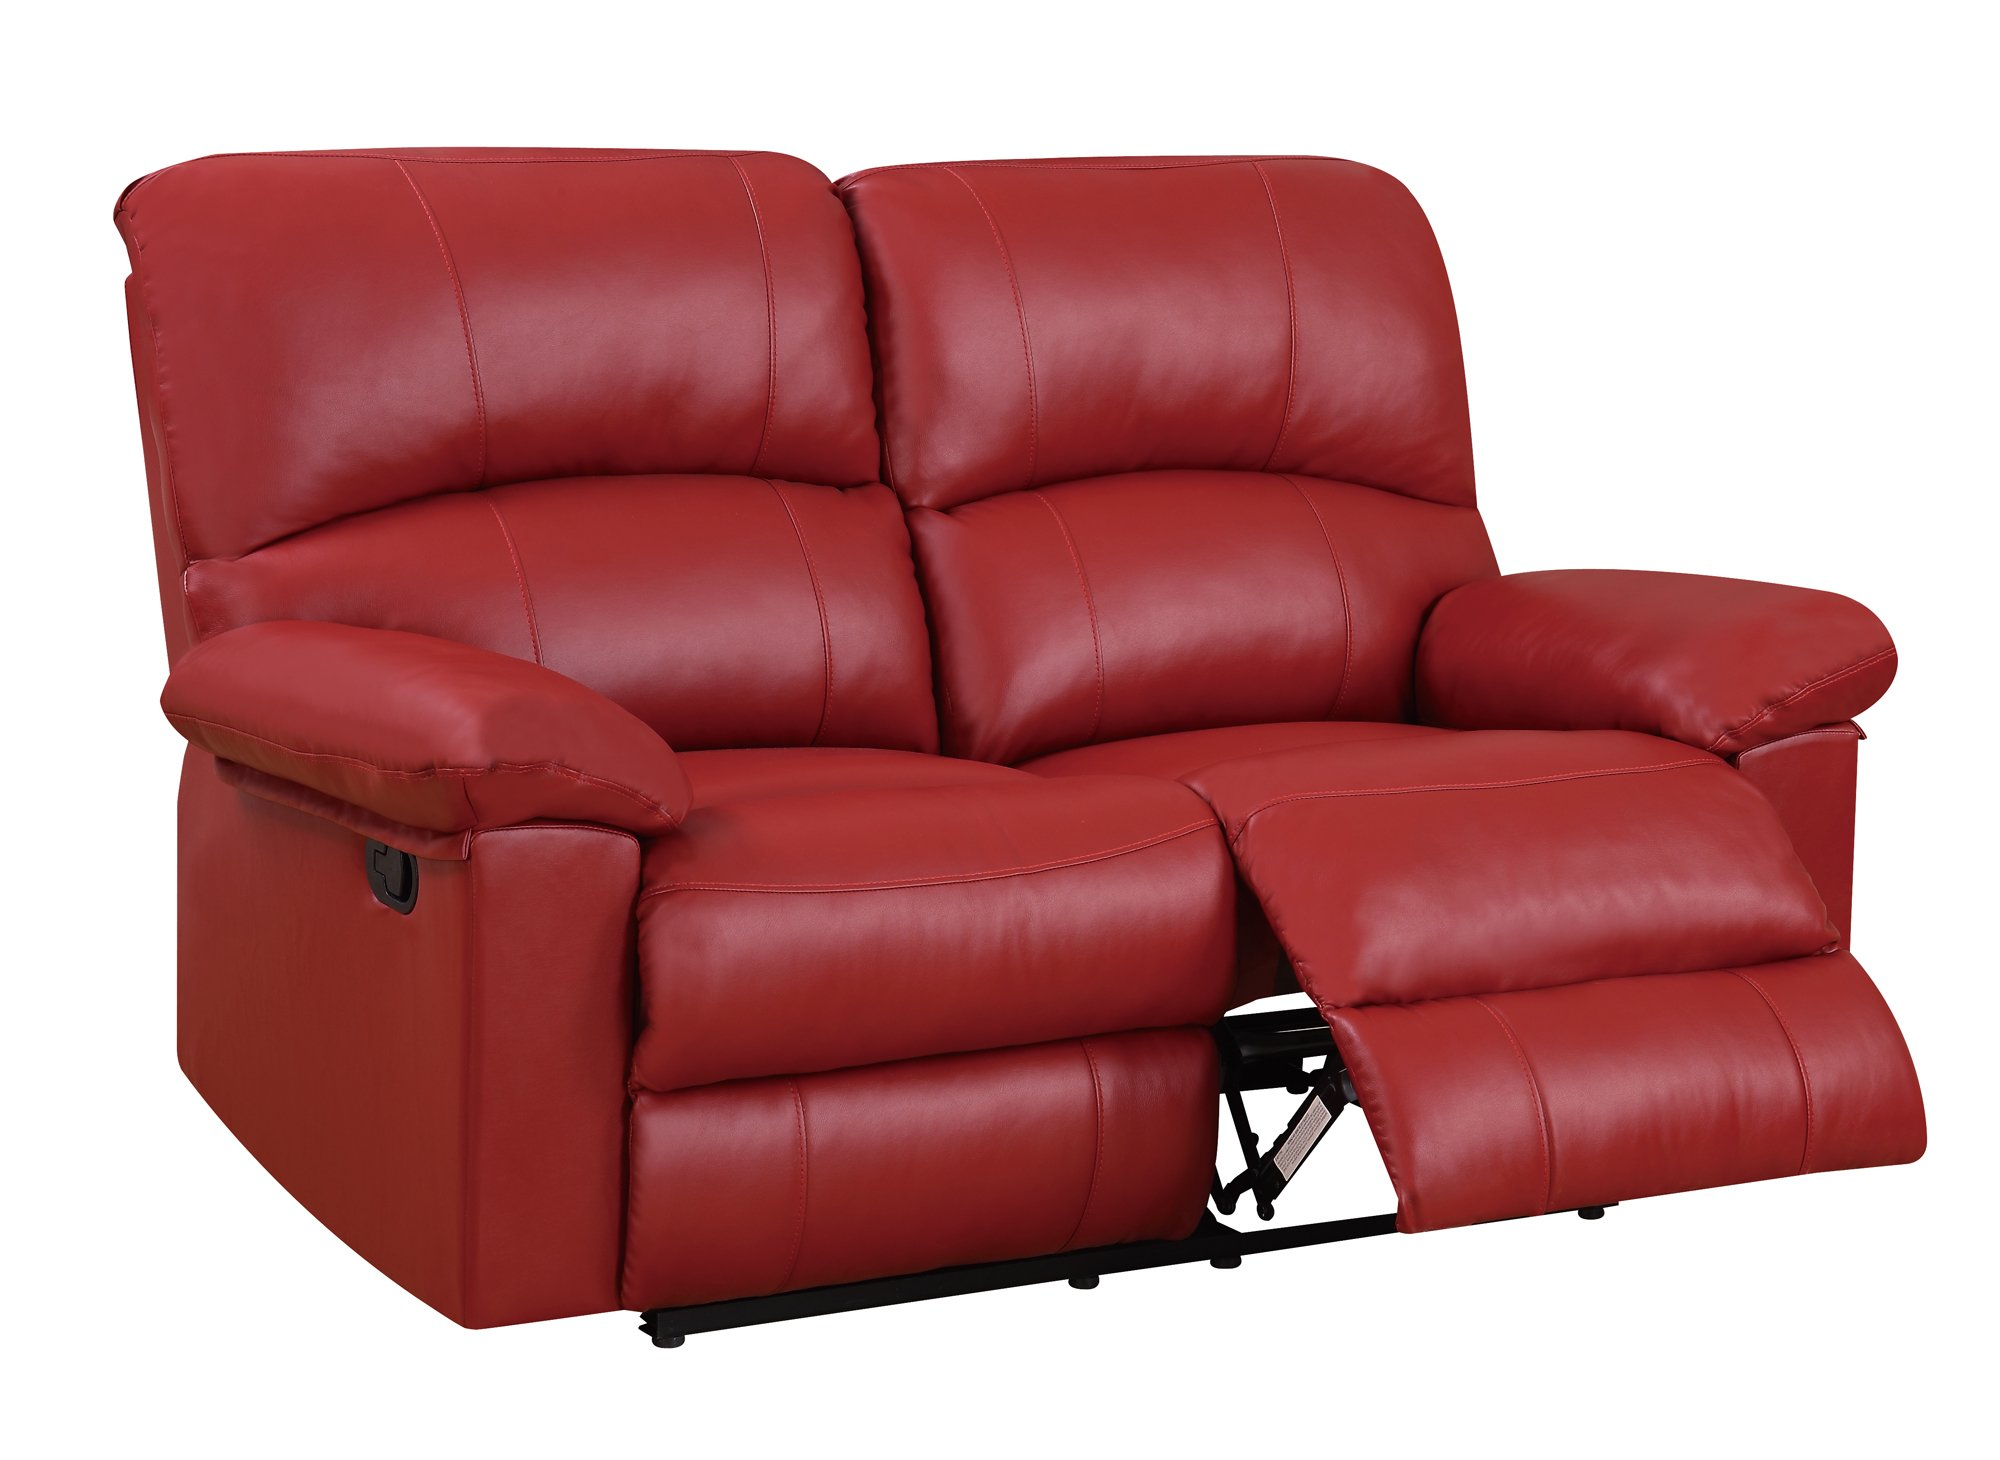 U99270 red pu reclining loveseat by global furniture Red sofas and loveseats